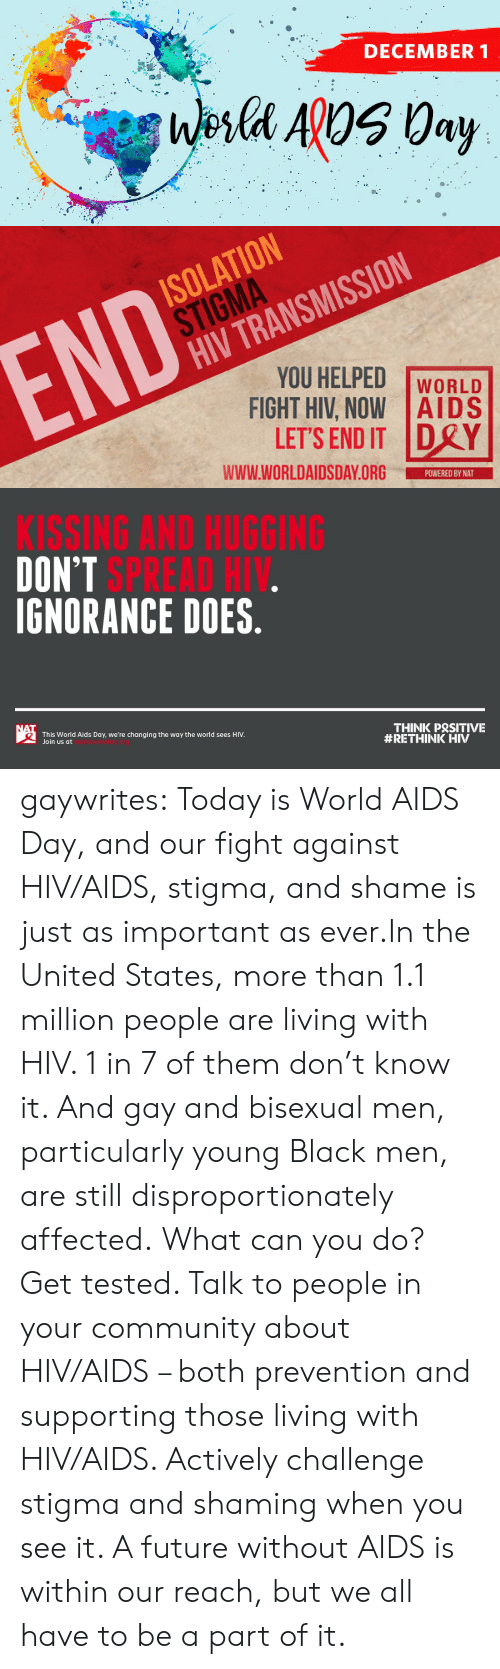 Join: DECEMBER 1  Wesla ApOS 0ay   ISOLATION  STIGMA  HIV TRANSMISSION  END  YOU HELPED  FIGHT HIV, NOW AIDS  LET'S END IT DRY  WORLD  www.WORLDAIDSDAY.ORG  POWERED BY NAT   KISSING AND HUGGING  DON'T SPREAD HIV.  IGNORANCE DOES.  NAT  THINK PRSITIVE  #RETHINK HIV  This World Aids Day, we're changing the way the world sees HIV.  Join us at gaywrites:  Today is World AIDS Day, and our fight against HIV/AIDS, stigma, and shame is just as important as ever.In the United States, more than 1.1 million people are living with HIV. 1 in 7 of them don't know it. And gay and bisexual men, particularly young Black men, are still disproportionately affected. What can you do? Get tested. Talk to people in your community about HIV/AIDS – both prevention and supporting those living with HIV/AIDS. Actively challenge stigma and shaming when you see it. A future without AIDS is within our reach, but we all have to be a part of it.